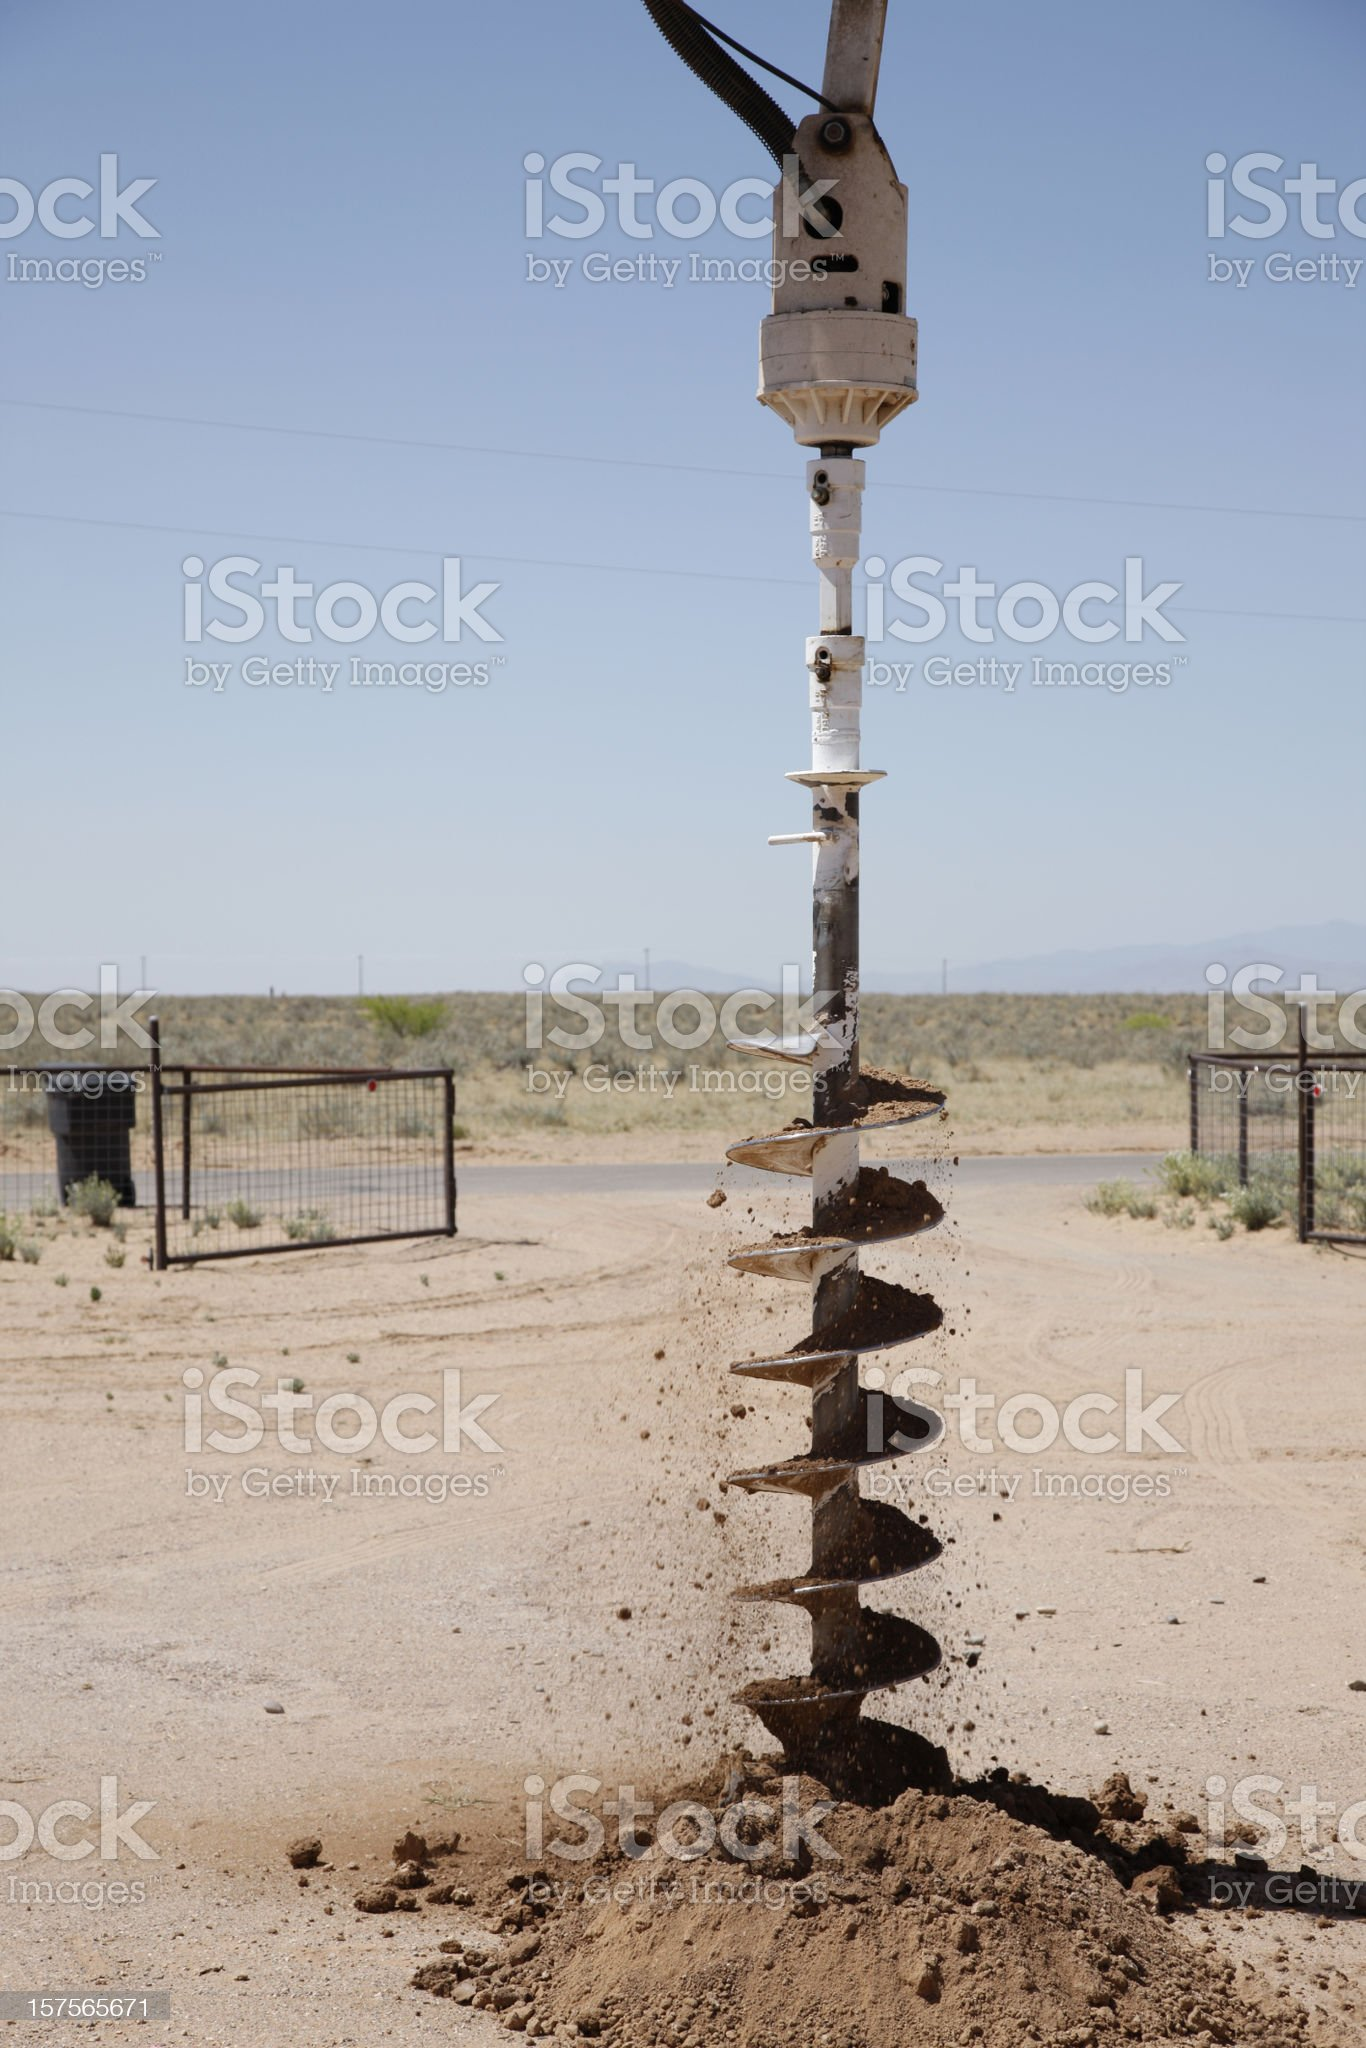 Drilling a Hole for Utility Pole with an Auger royalty-free stock photo